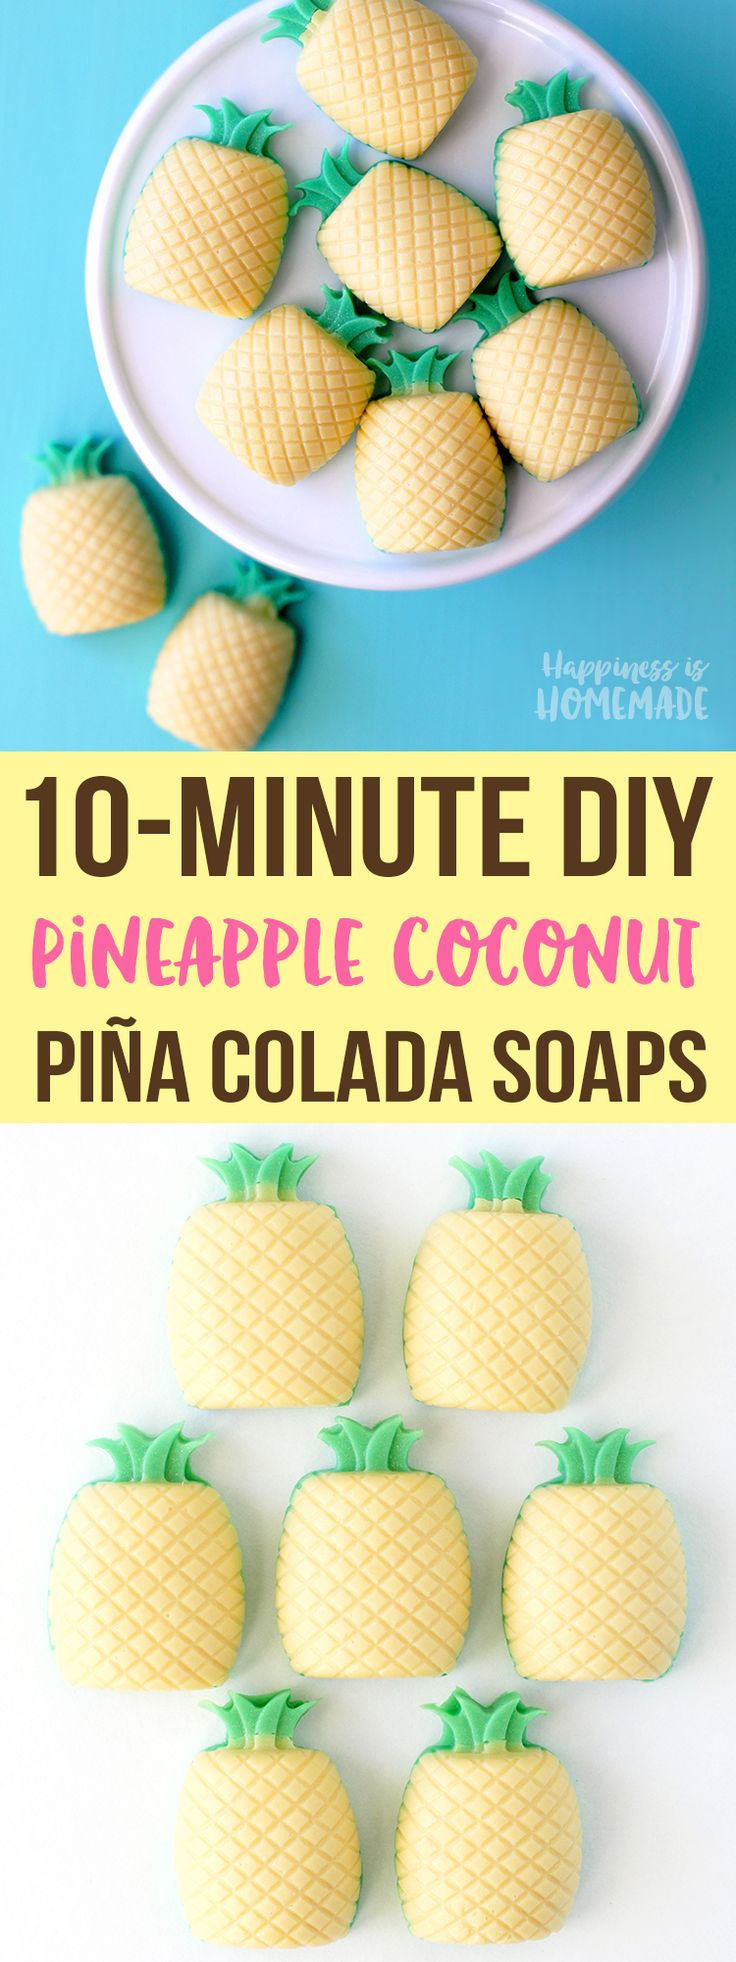 Pina Colada Pineapple Coconut Soap - 10 Minute DIY